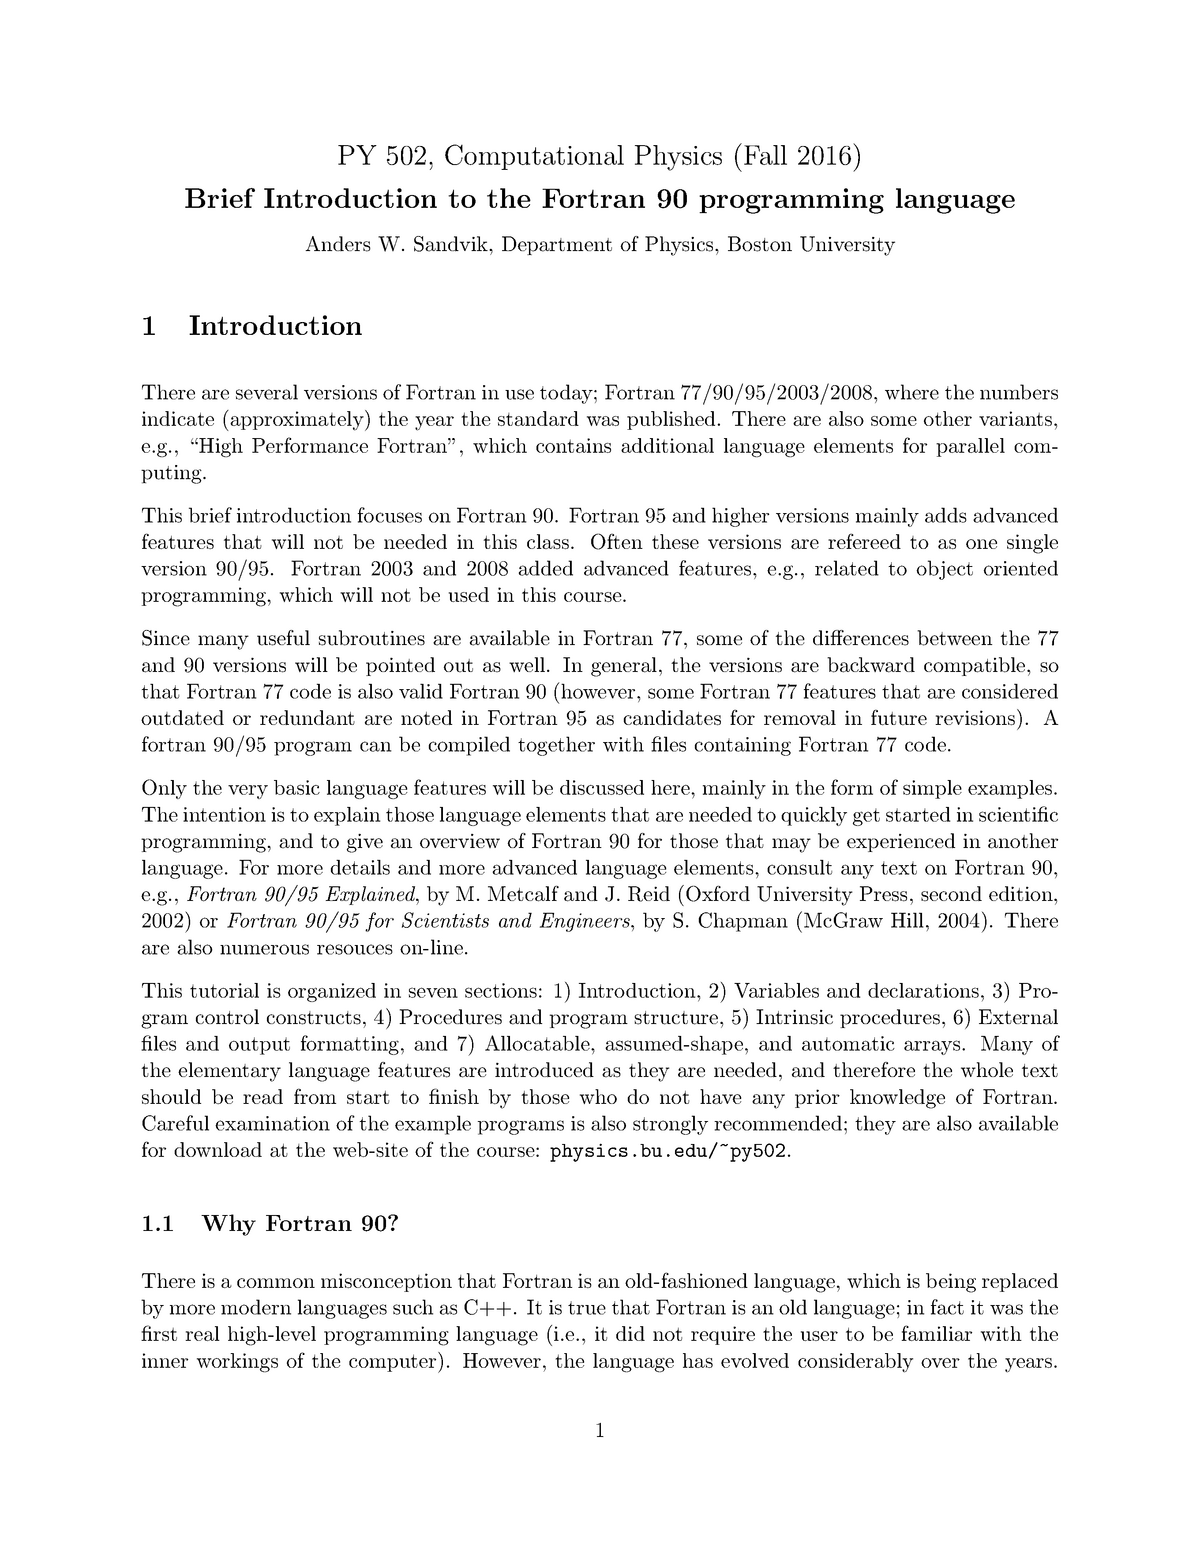 Lecture notes, lecture Brief Introduction to the Fortran 90